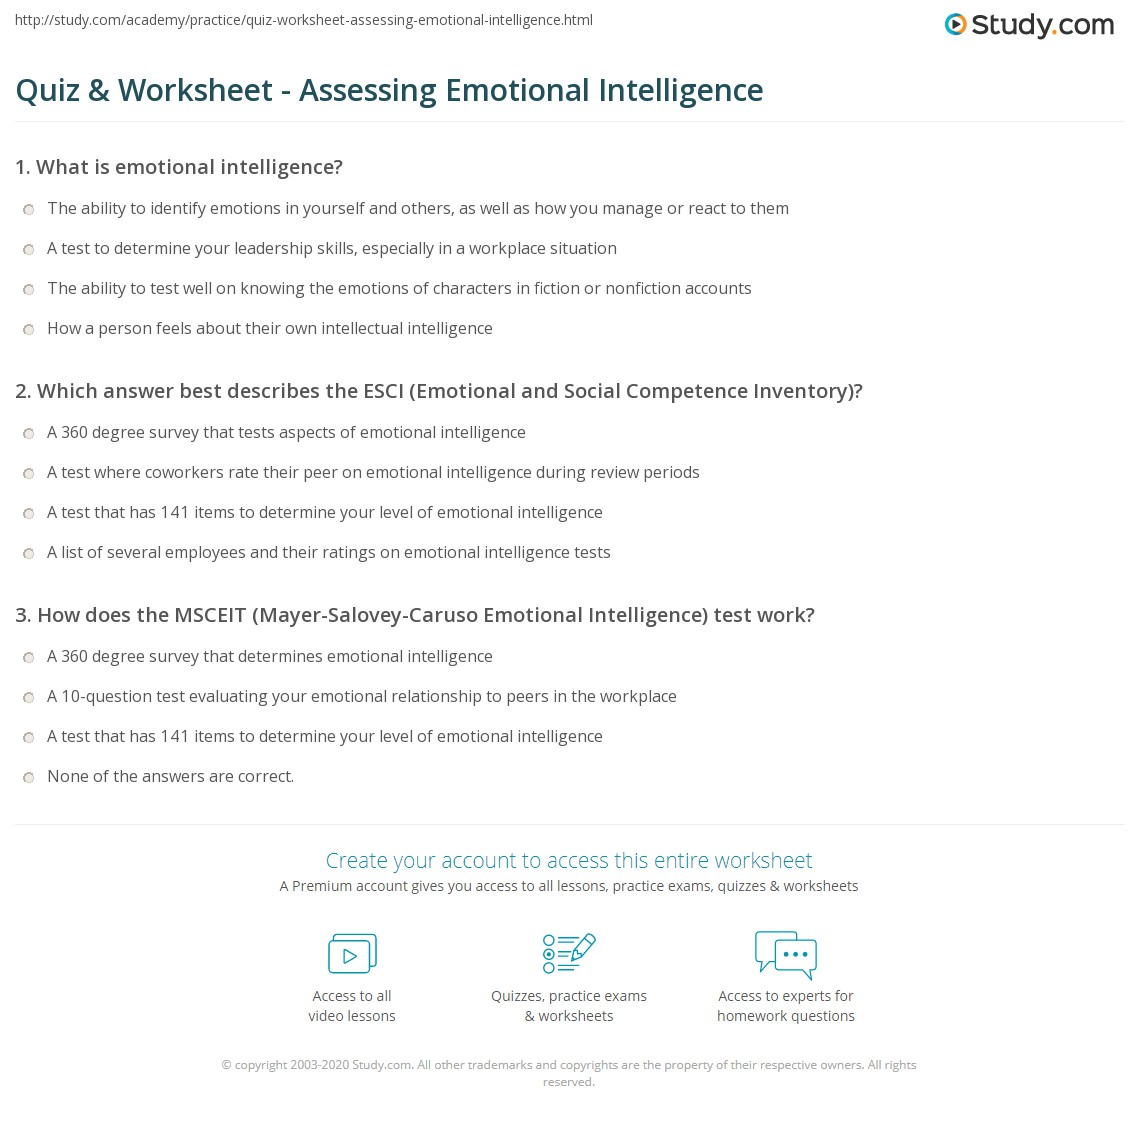 Remarkable image with emotional intelligence test printable